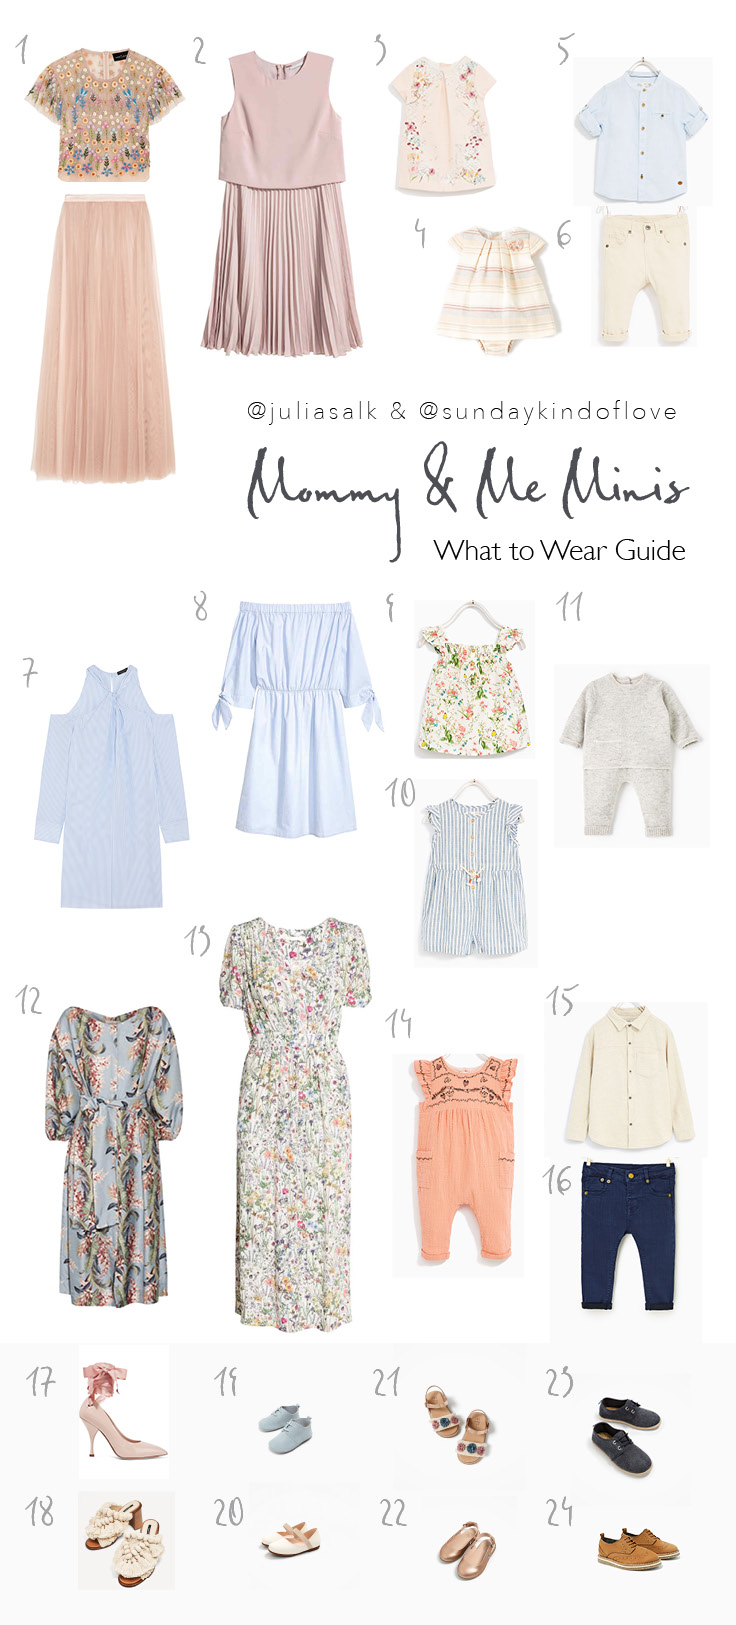 mommy-and-me-photos-what-to-wear